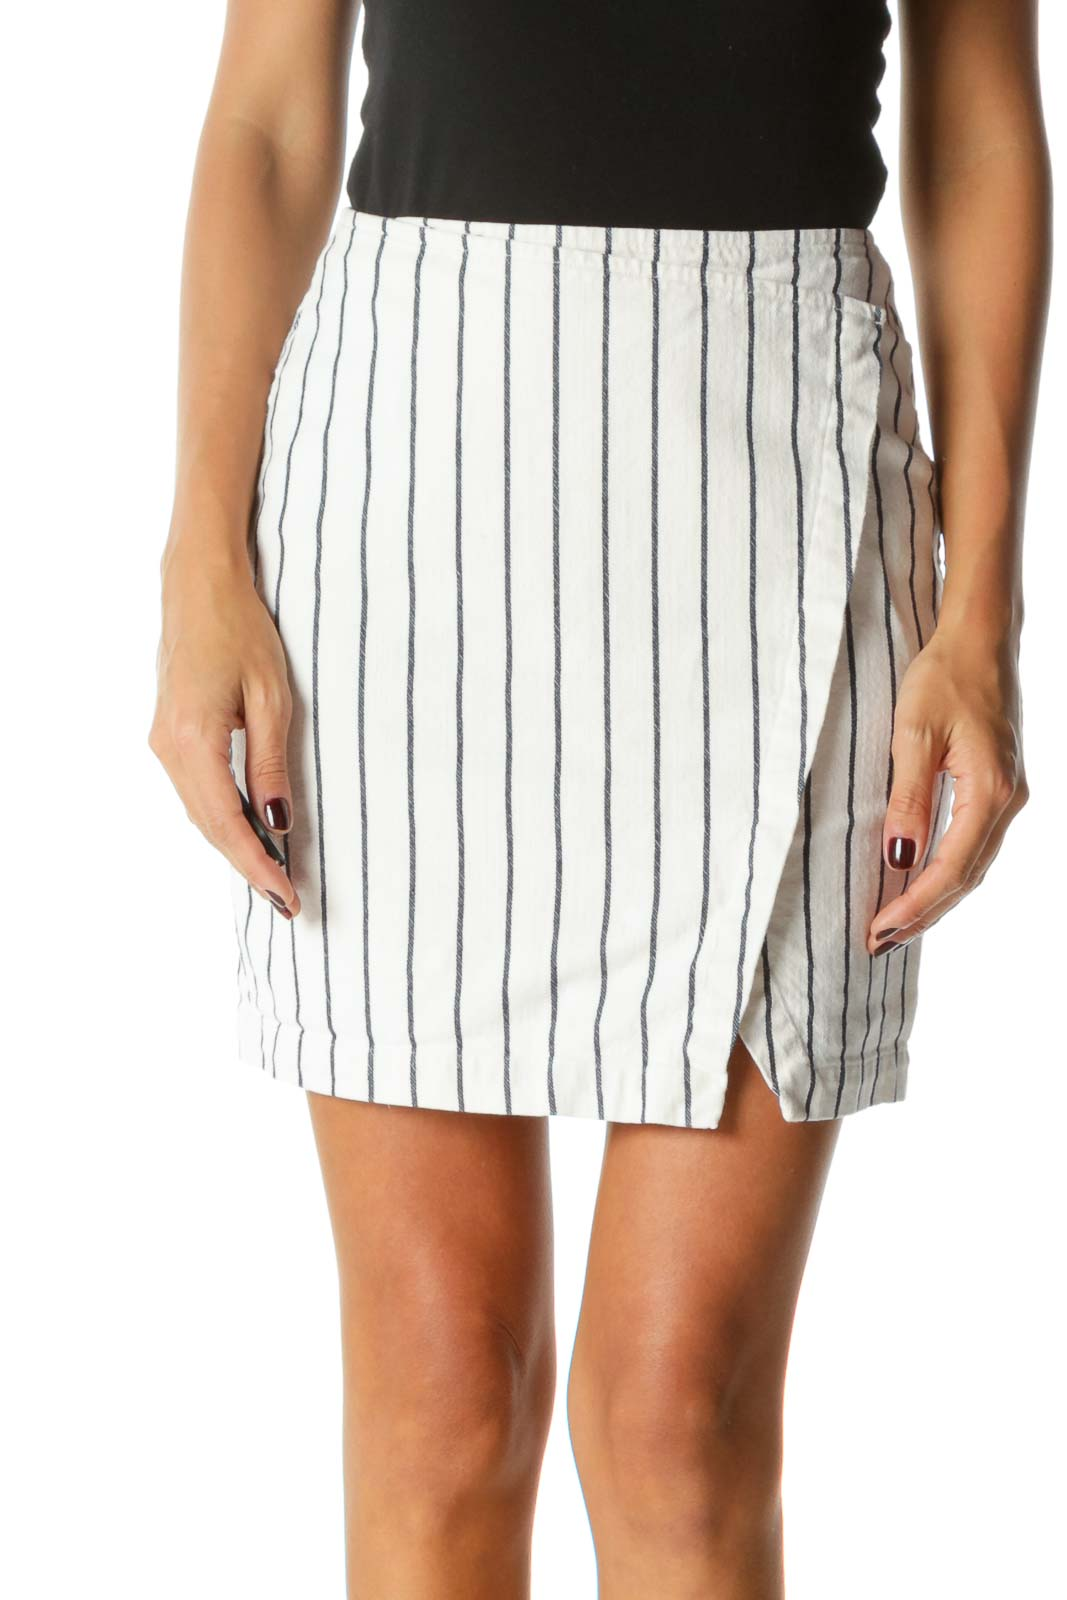 White Striped Mini Skirt